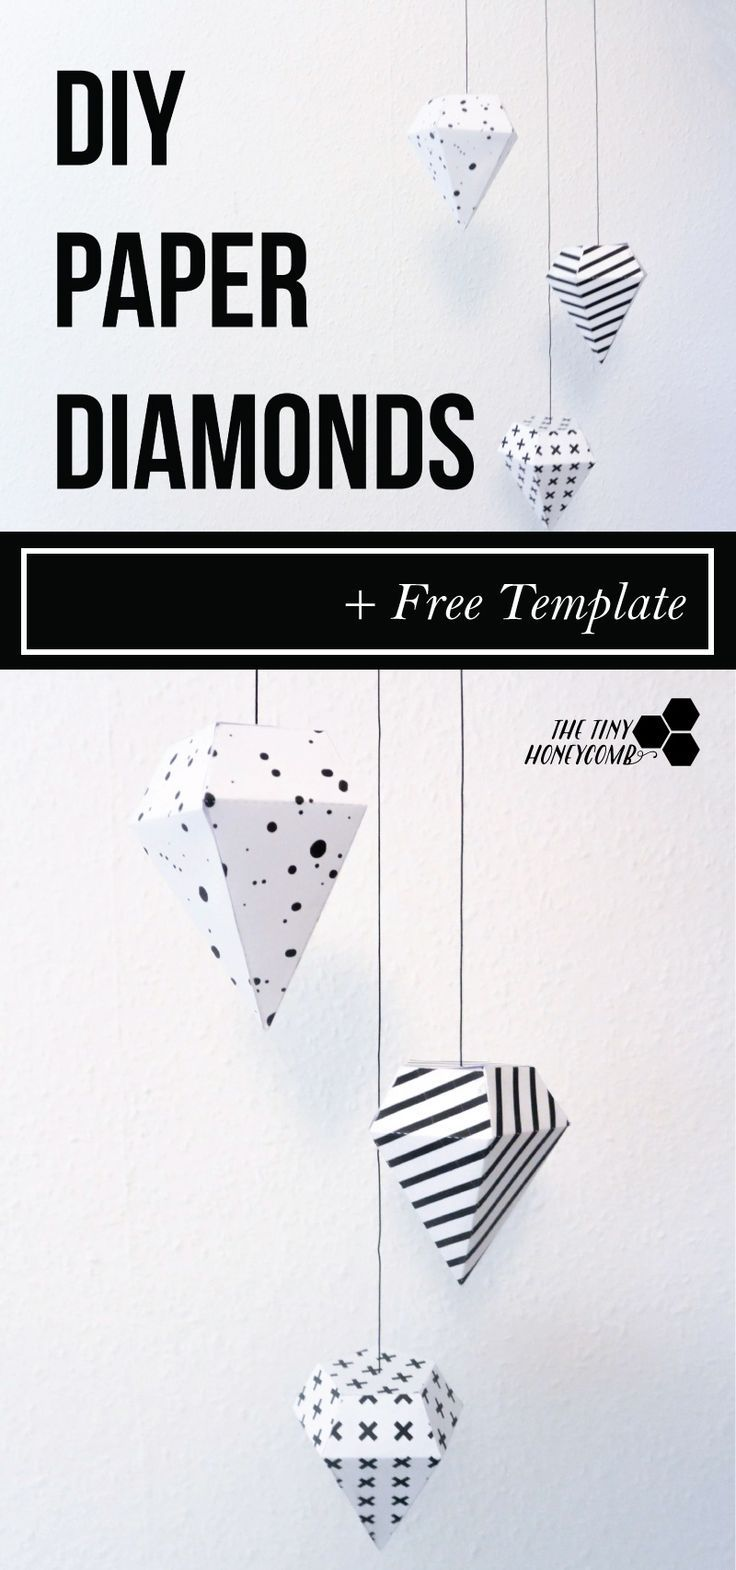 Diy Paper Diamonds With Free Template Paper Diamond Diy Paper Diamond Template